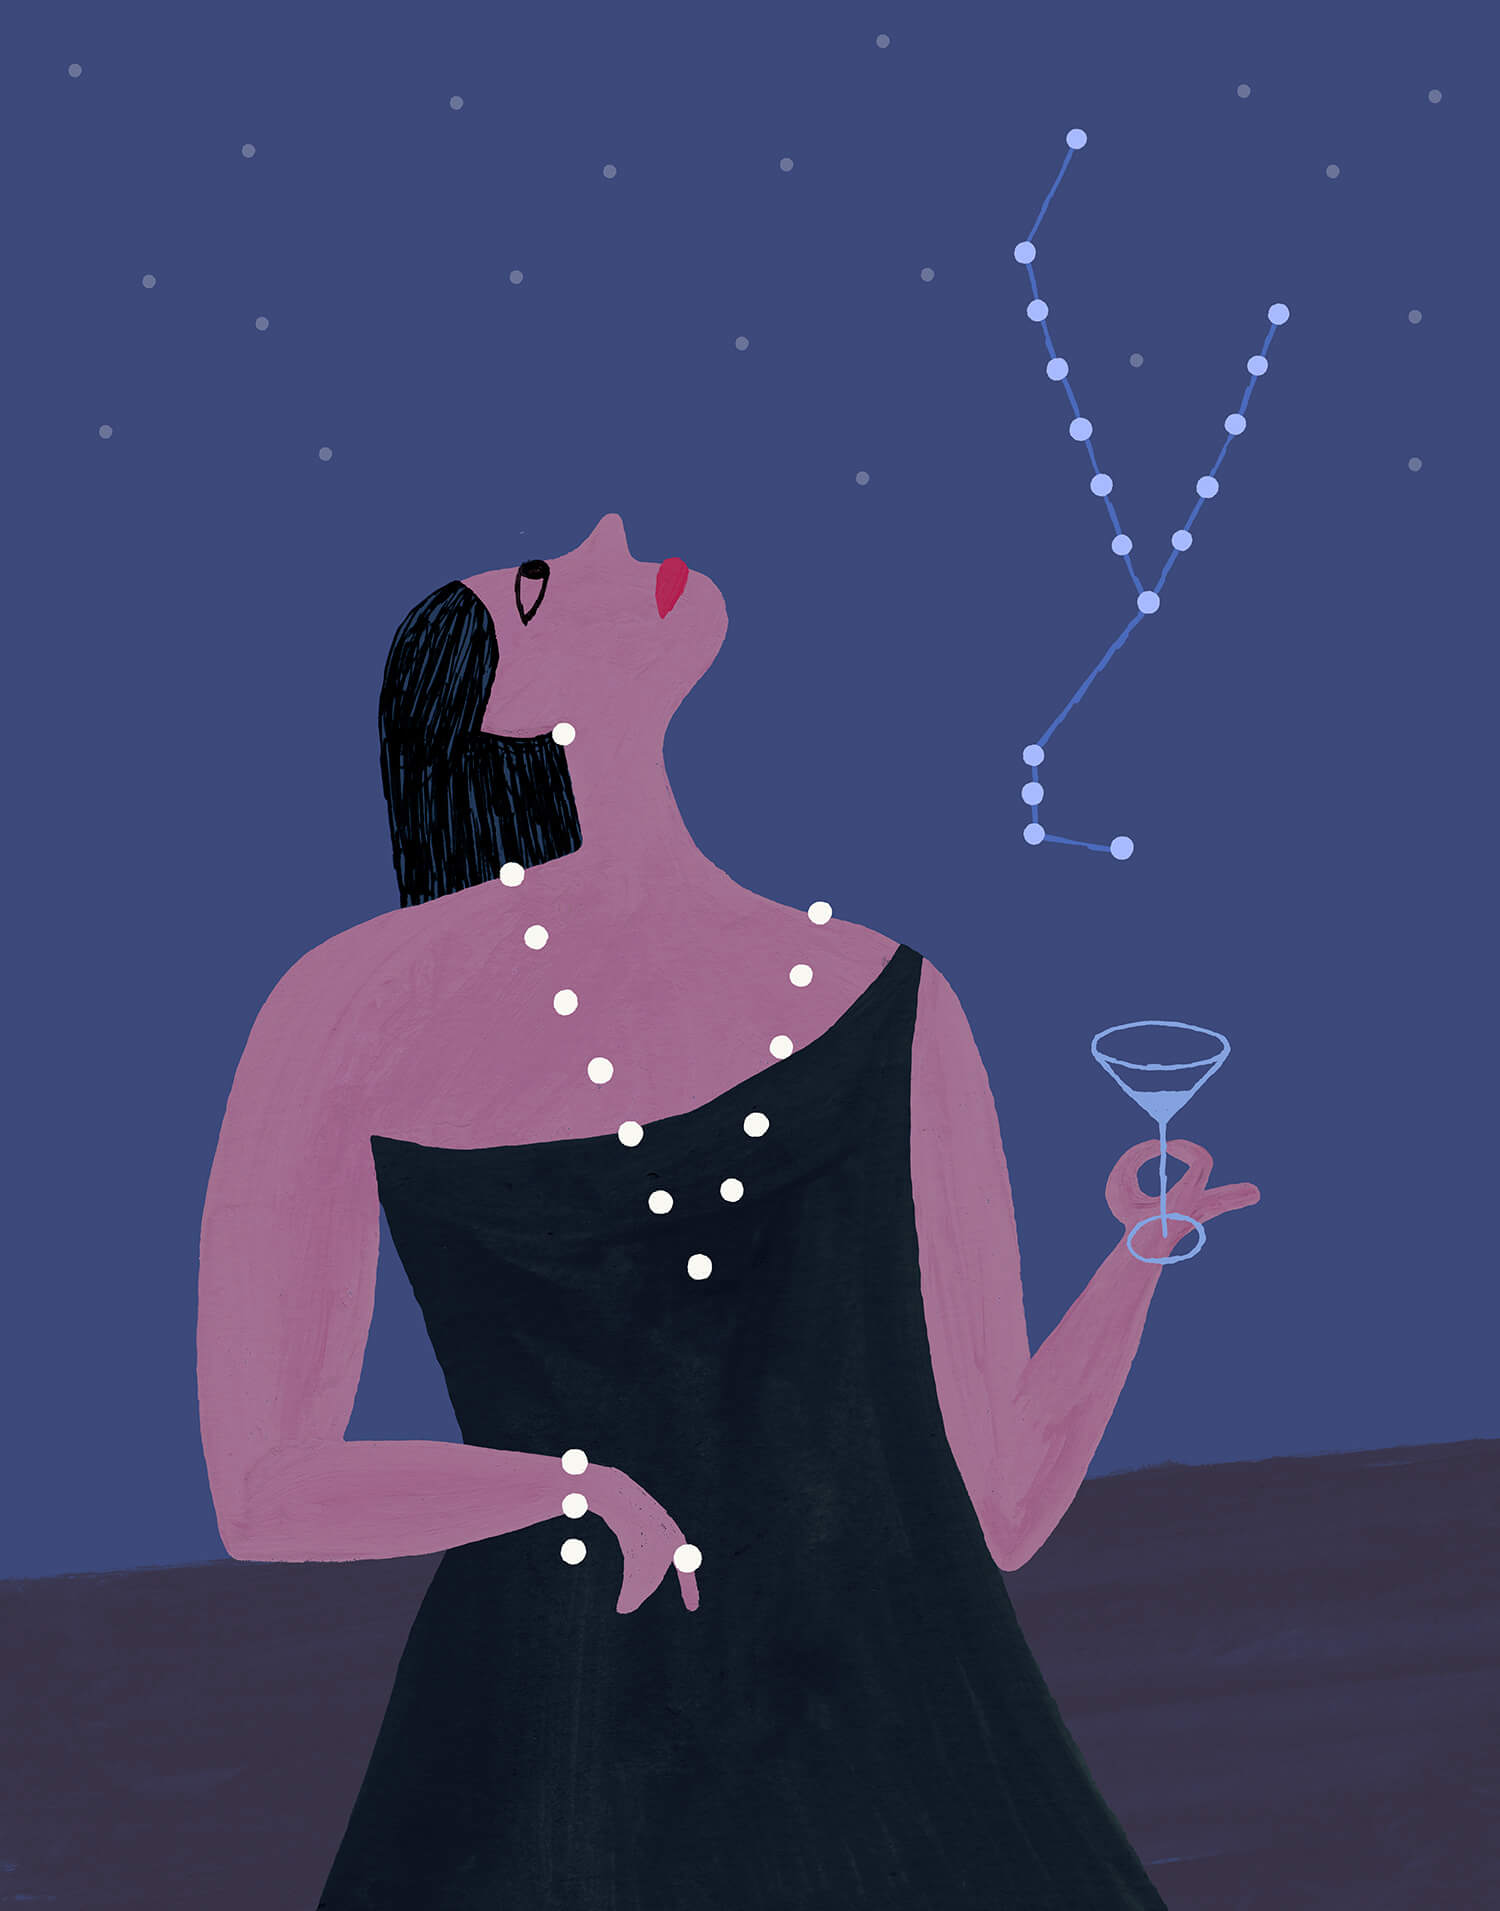 miguel porlan, illustration, the new yorker, starstuck, astrology